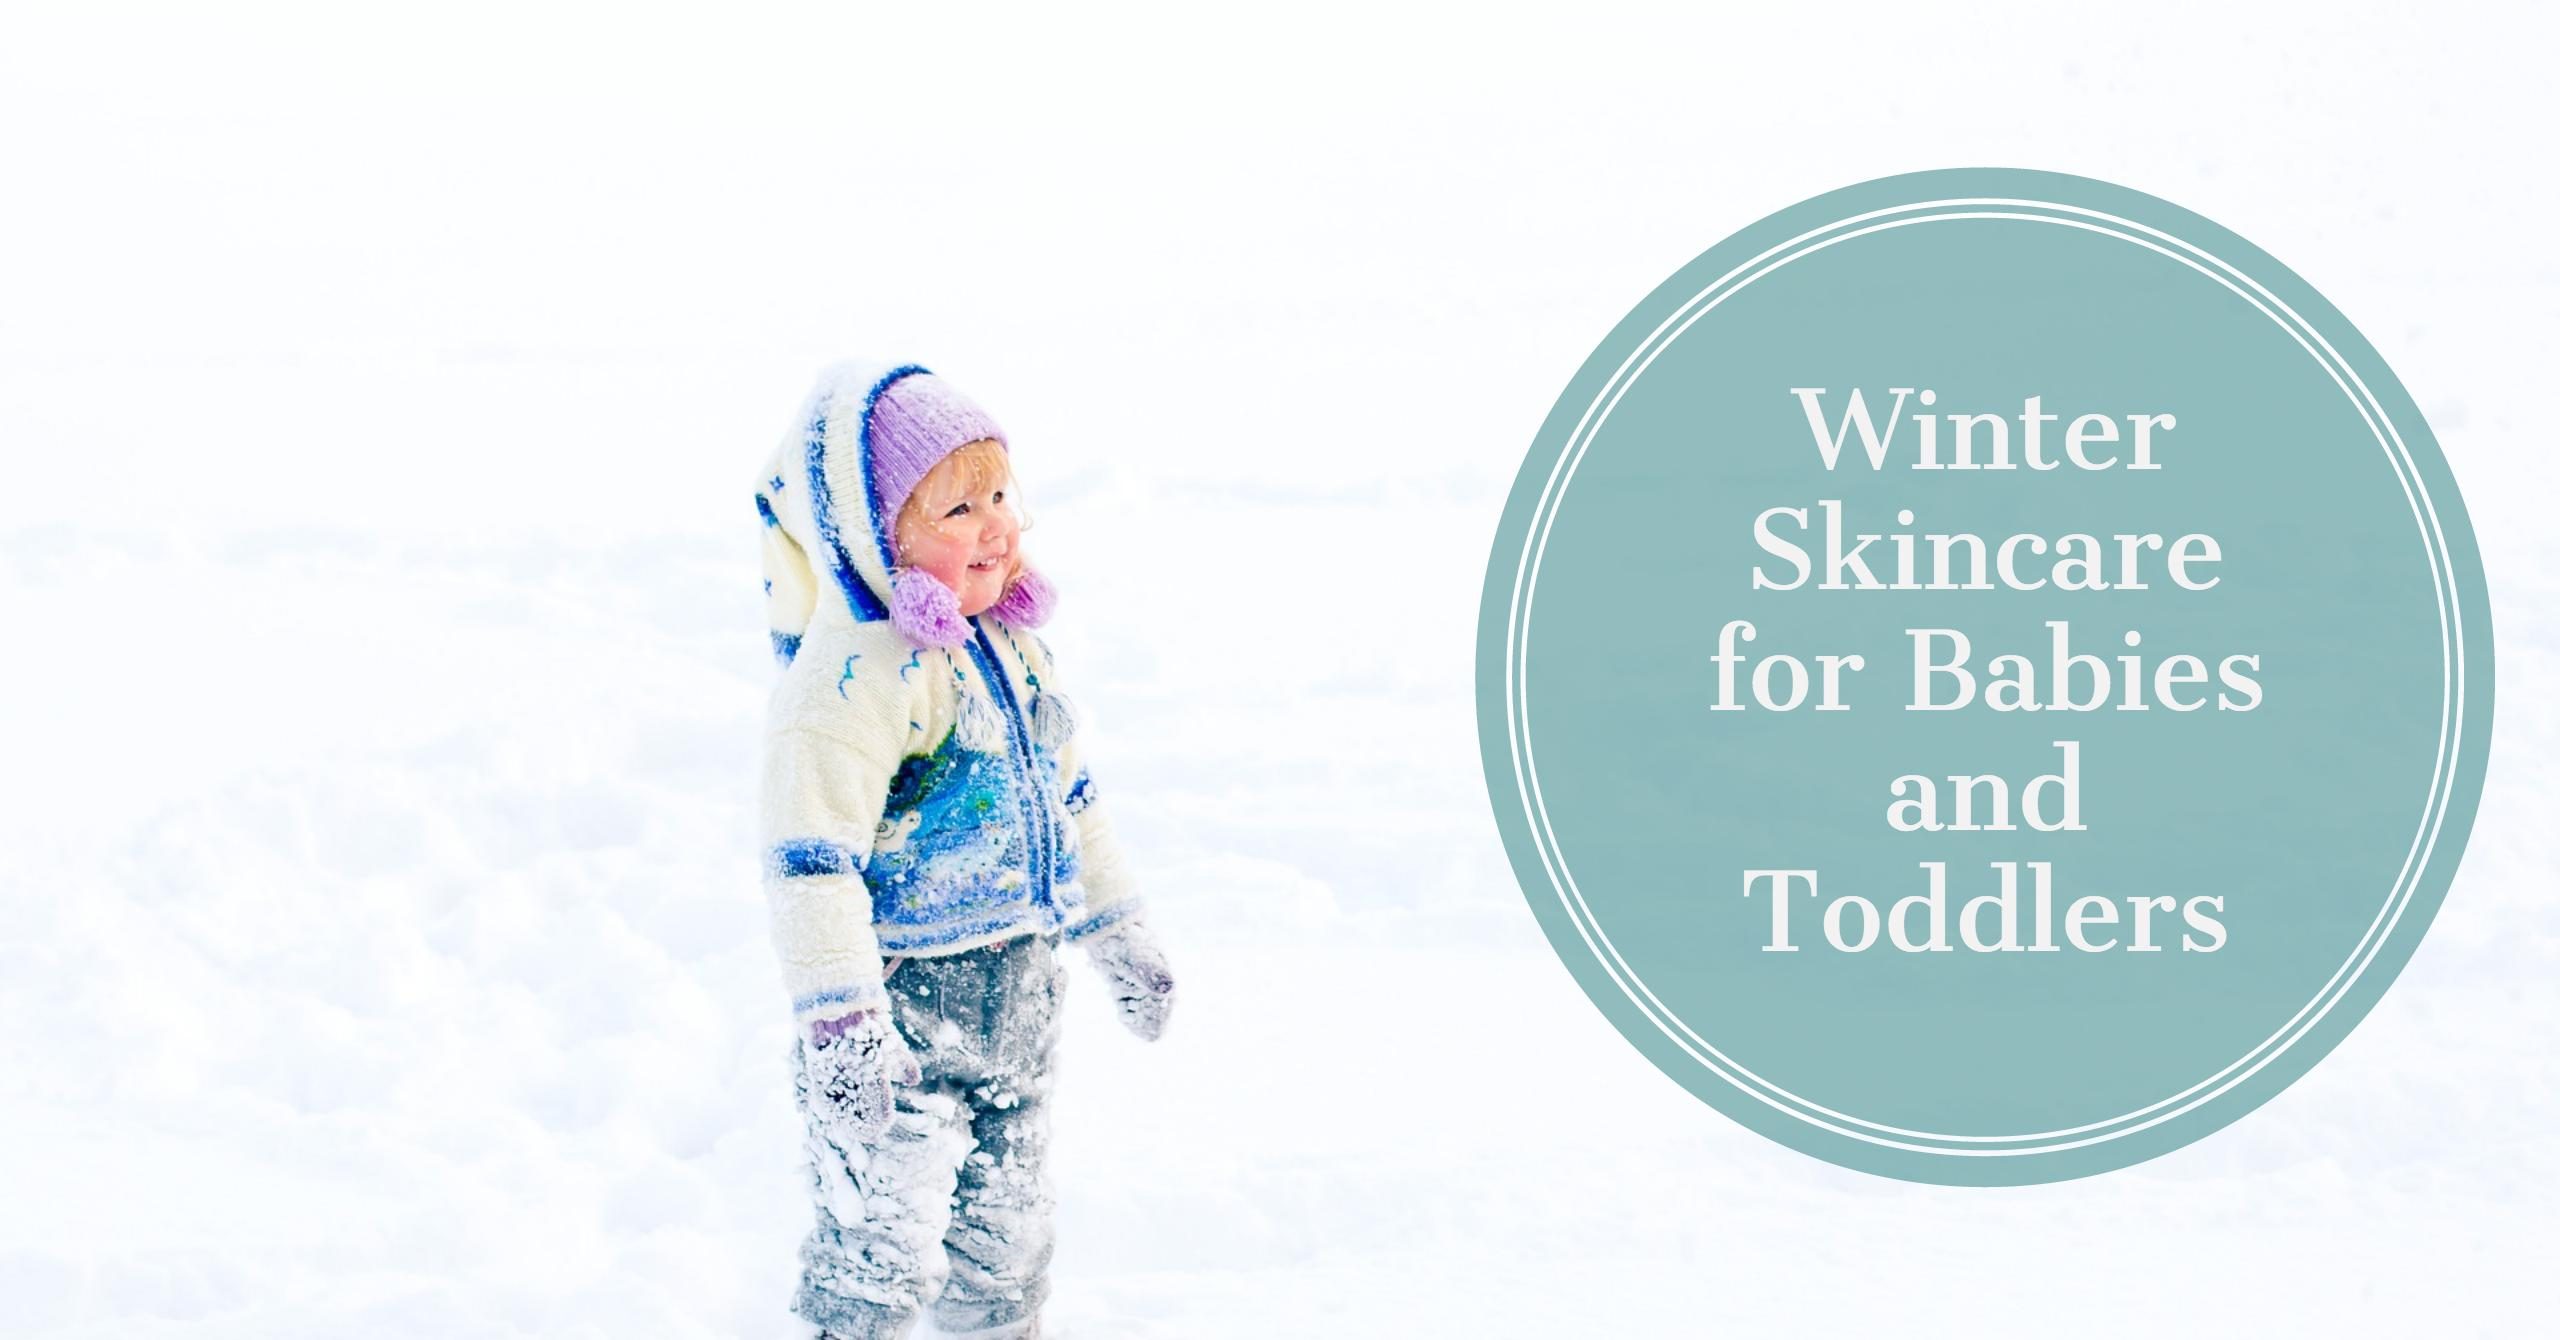 Winter Skincare for Babies2